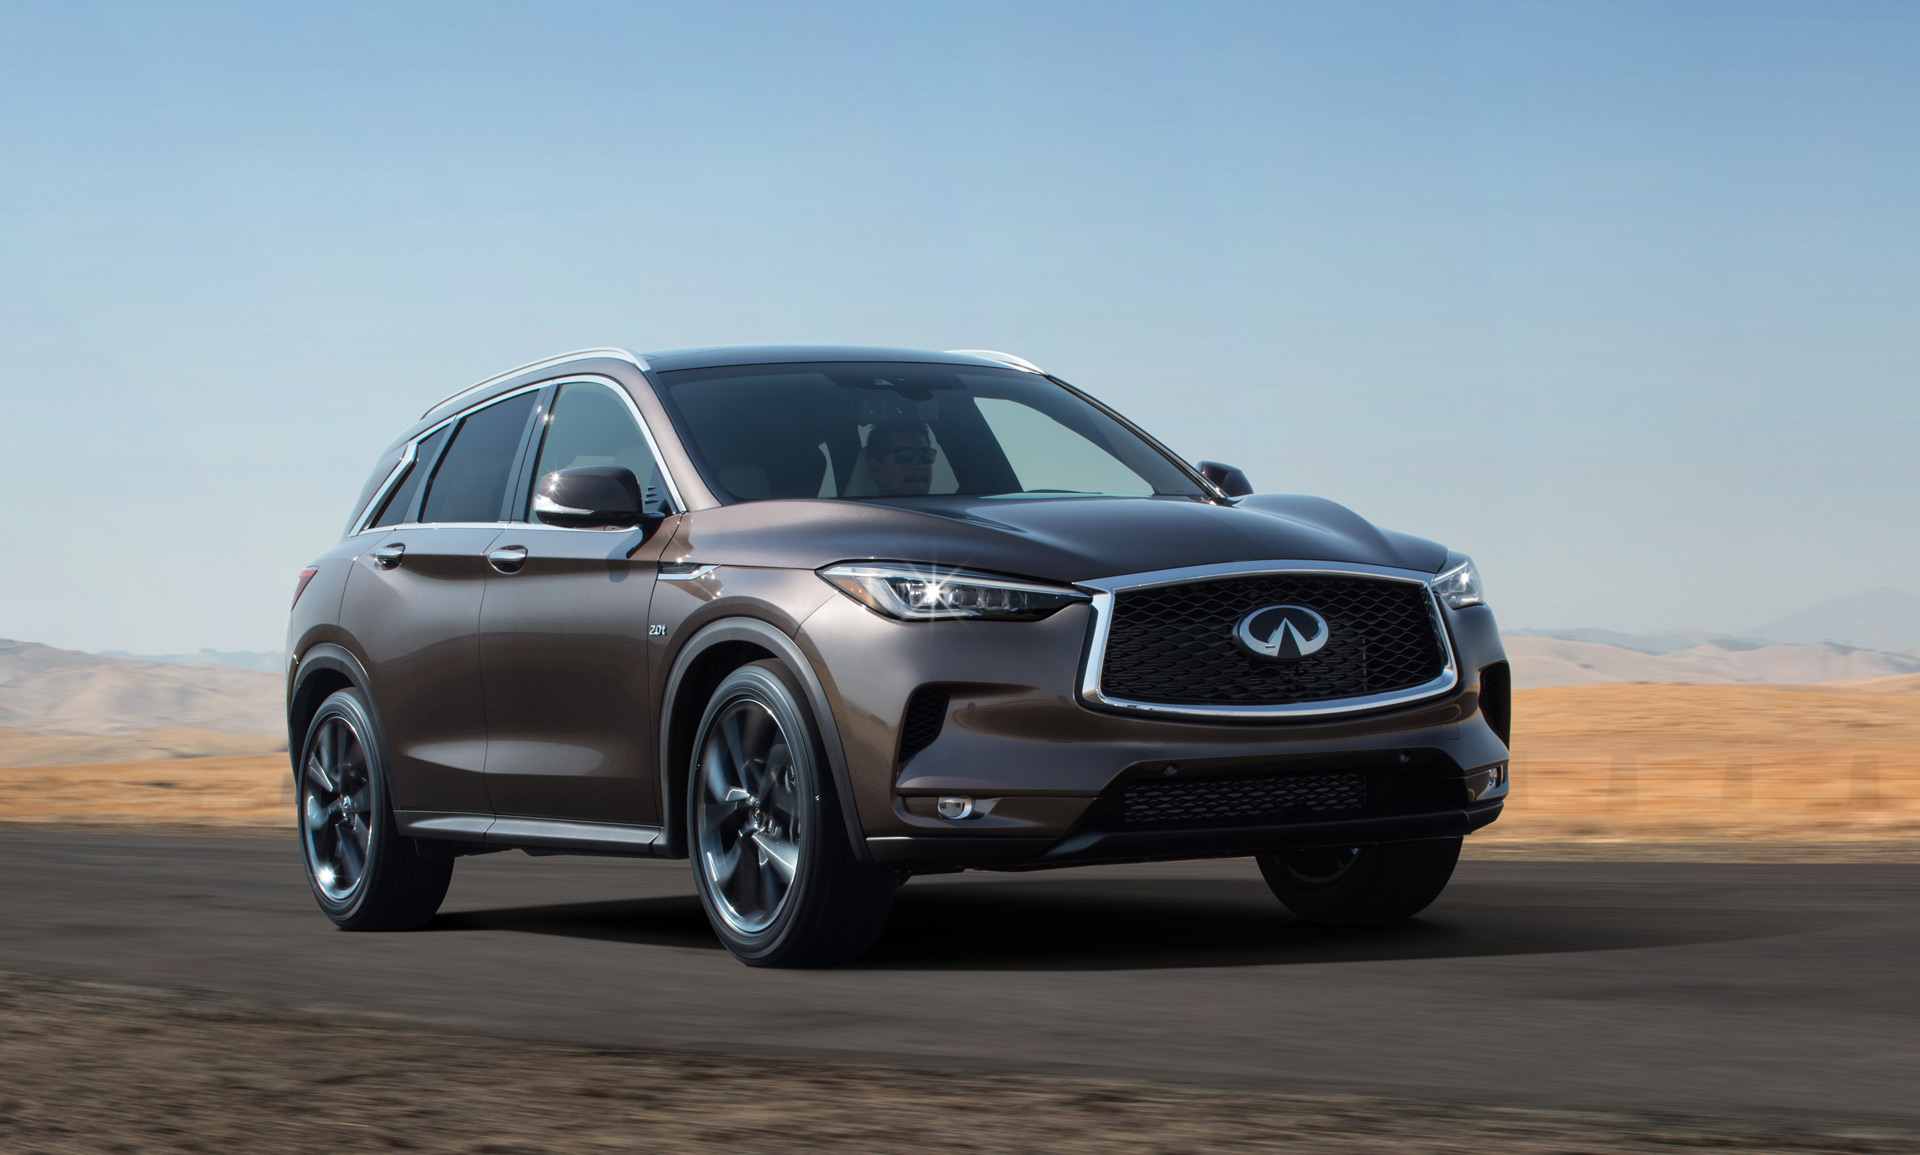 2019 infiniti qx50 review  ratings  specs  prices  and photos